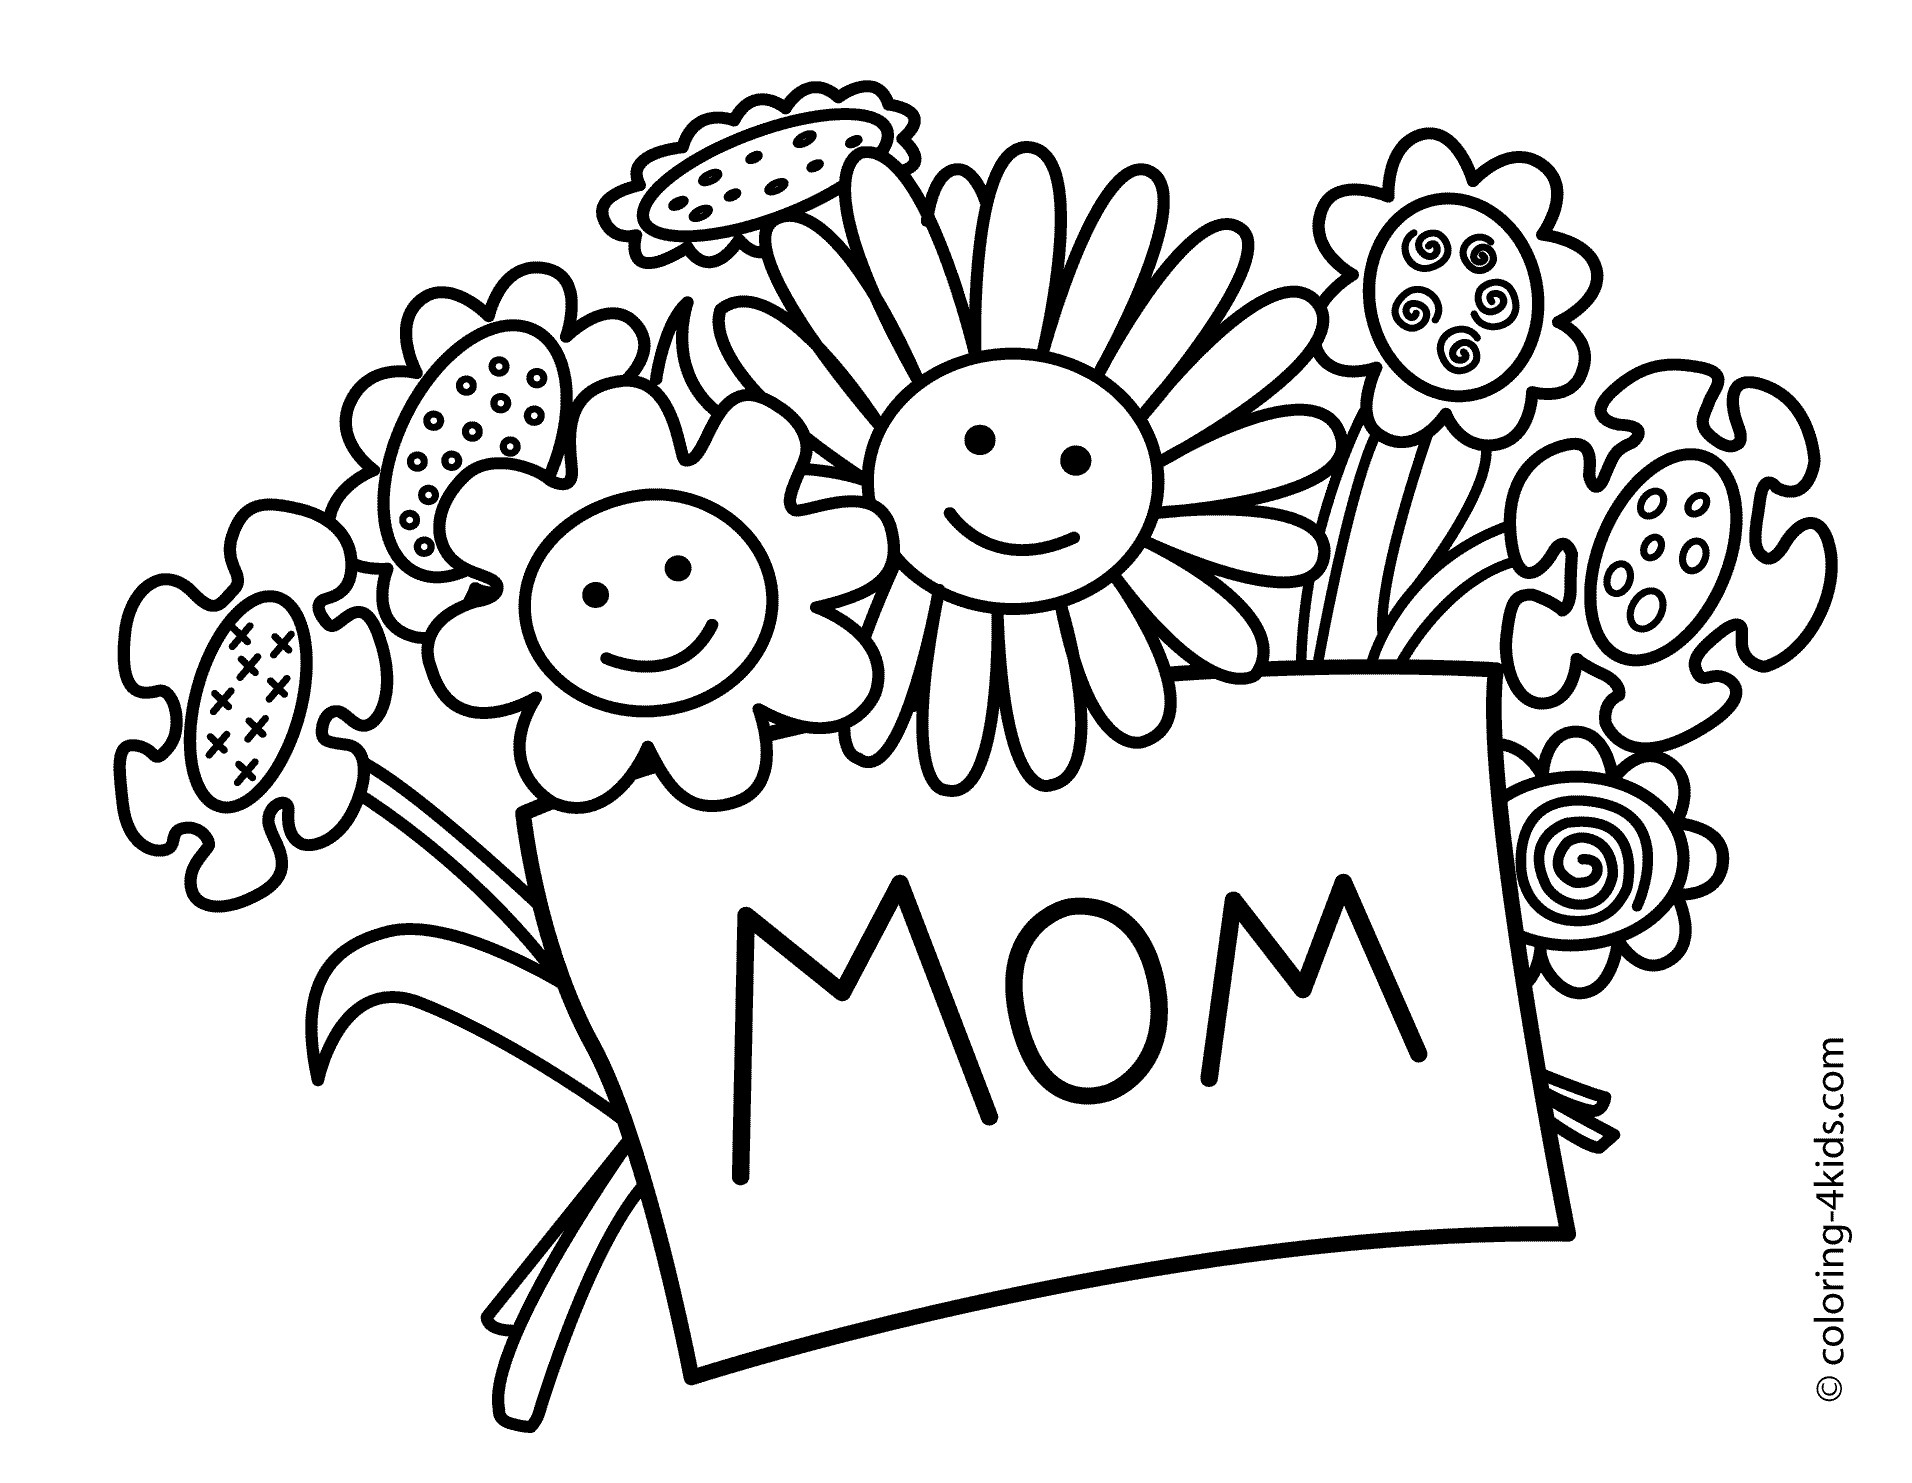 happy birthday mom printable coloring pages ; coloring-sheet-printable-save-happy-birthday-mom-printable-coloring-pages-printable-free-of-coloring-sheet-printable